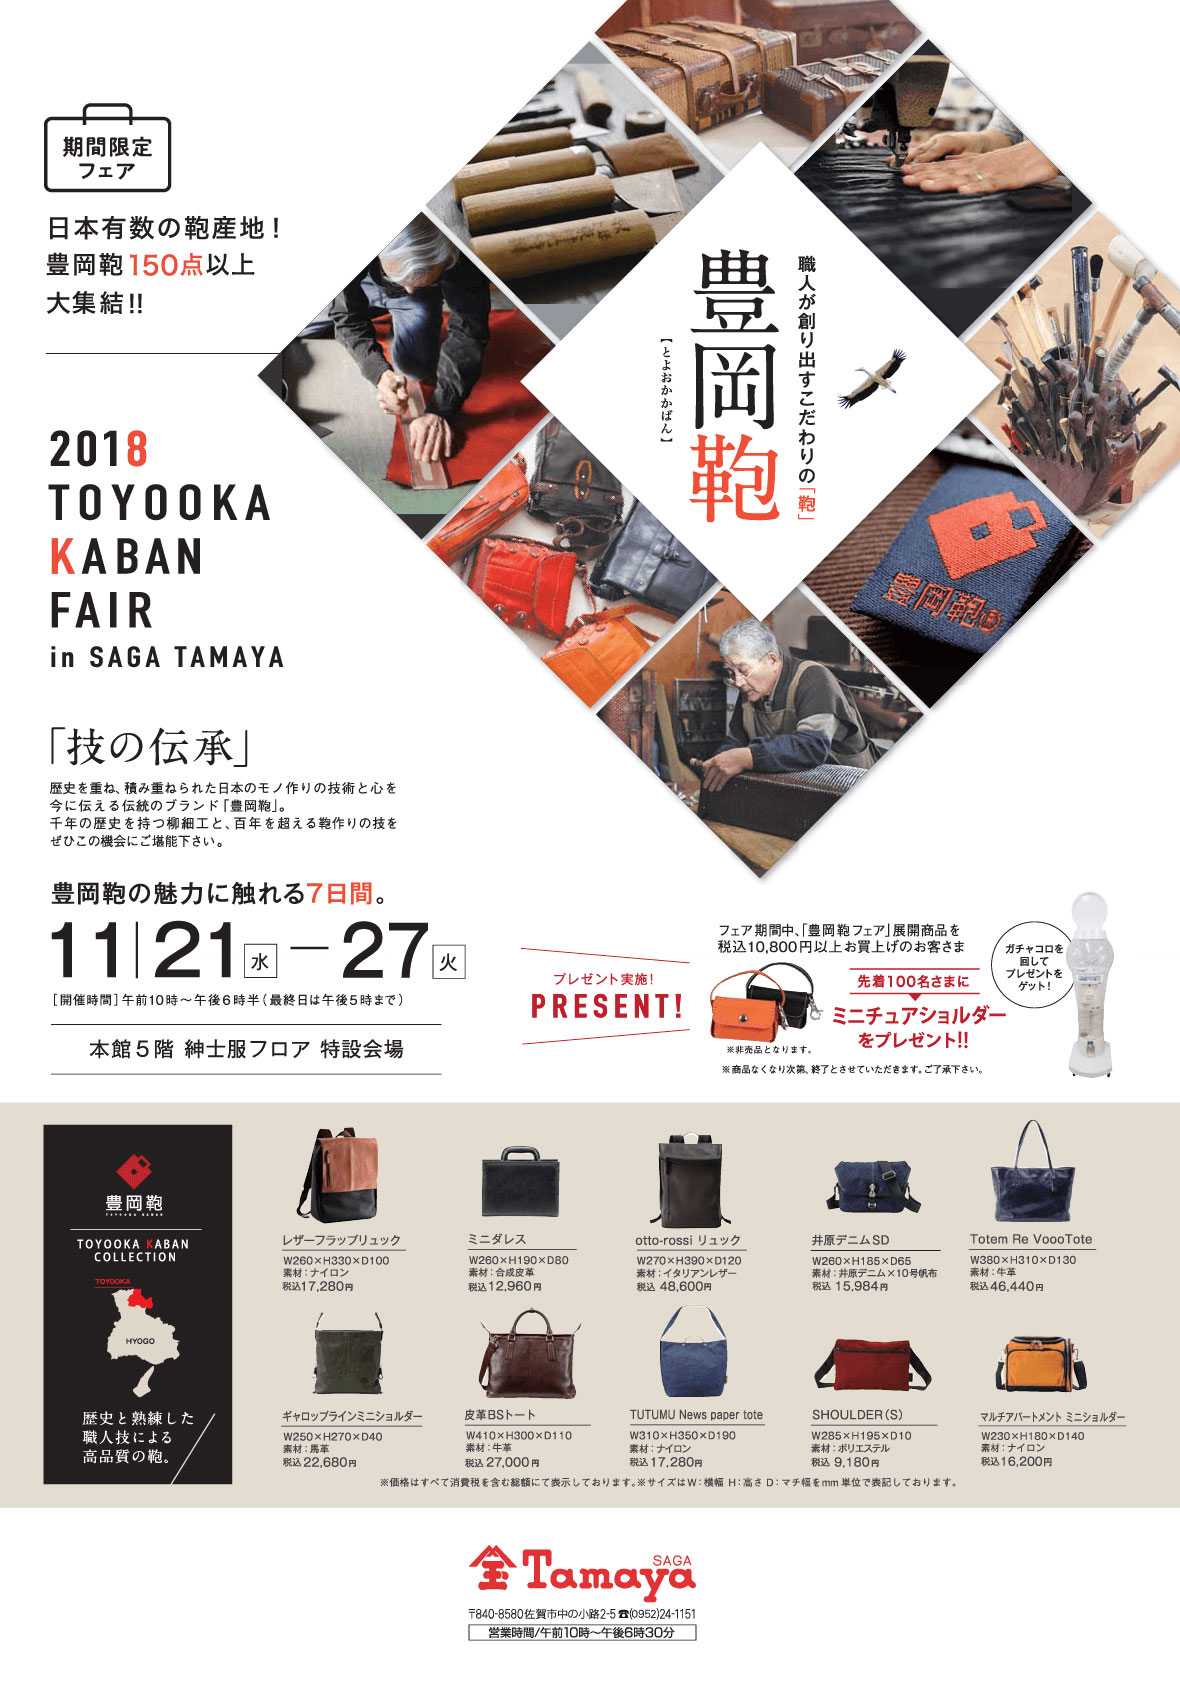 2018 TOYOOKA KABAN FAIR in SAGA TAMAYA